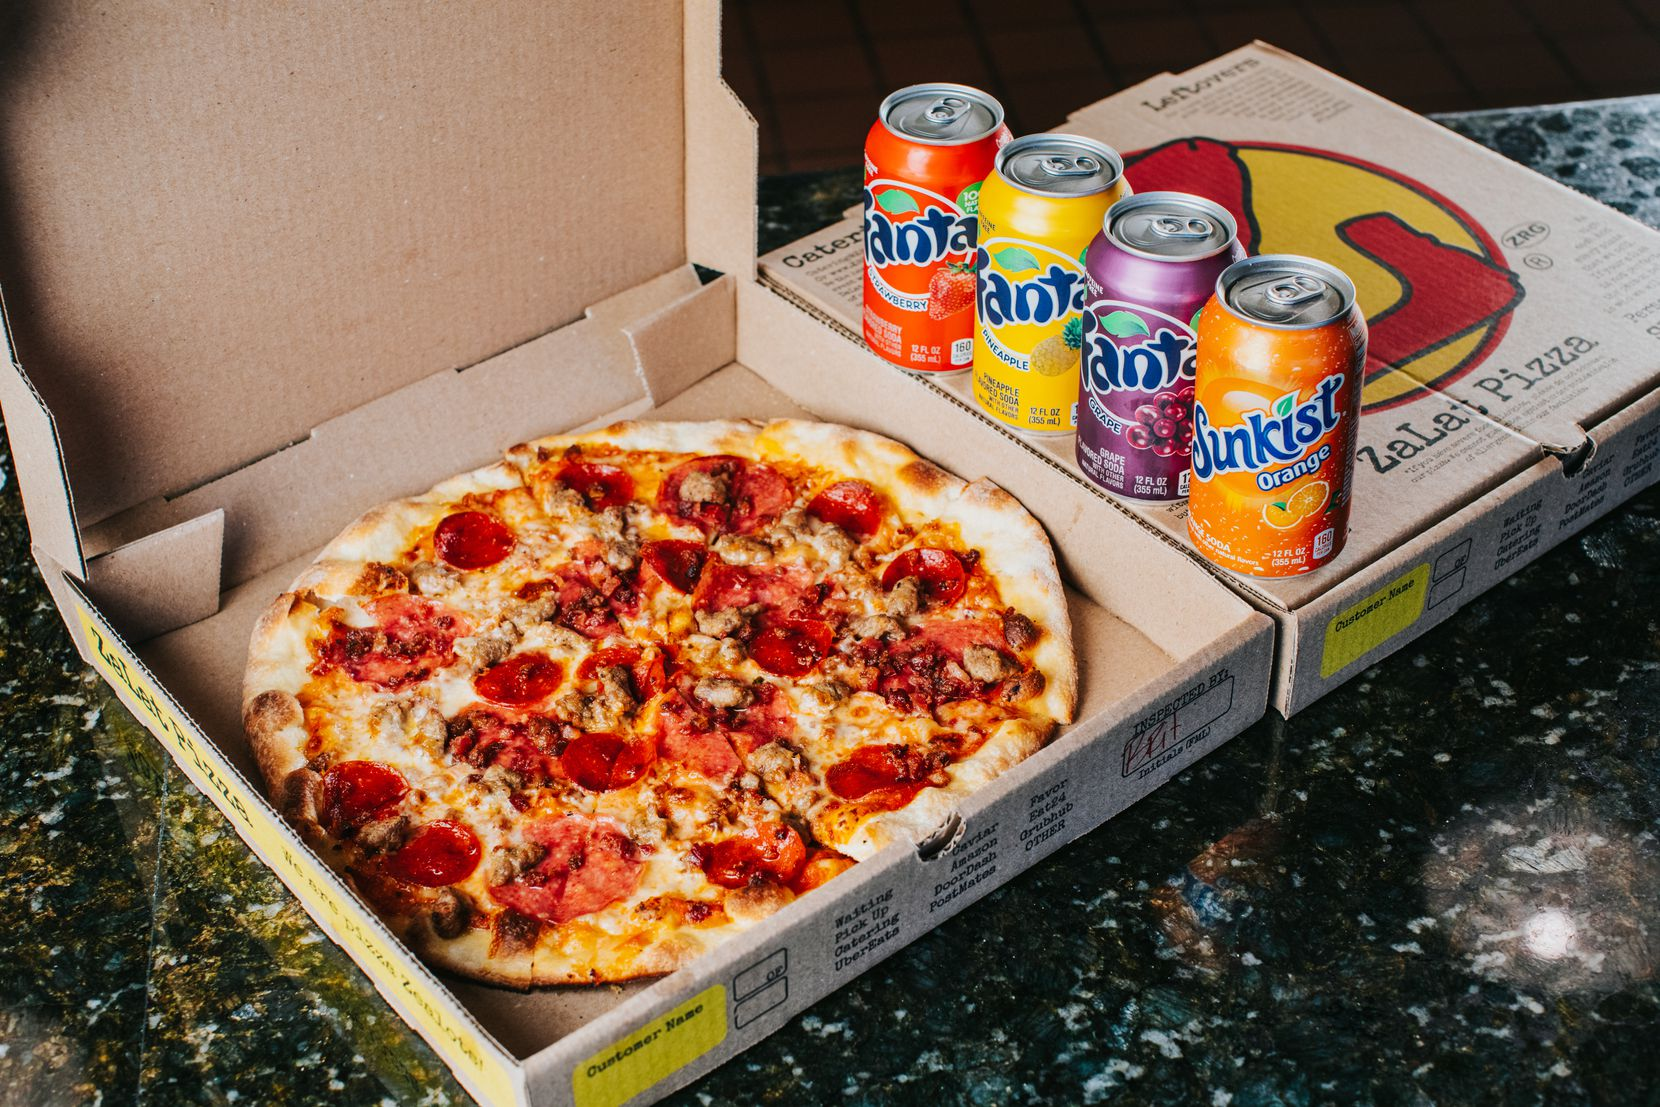 ZaLat Pizza offers the Meatza pizza topped with beef pepperoni, sausage, salami and bacon.